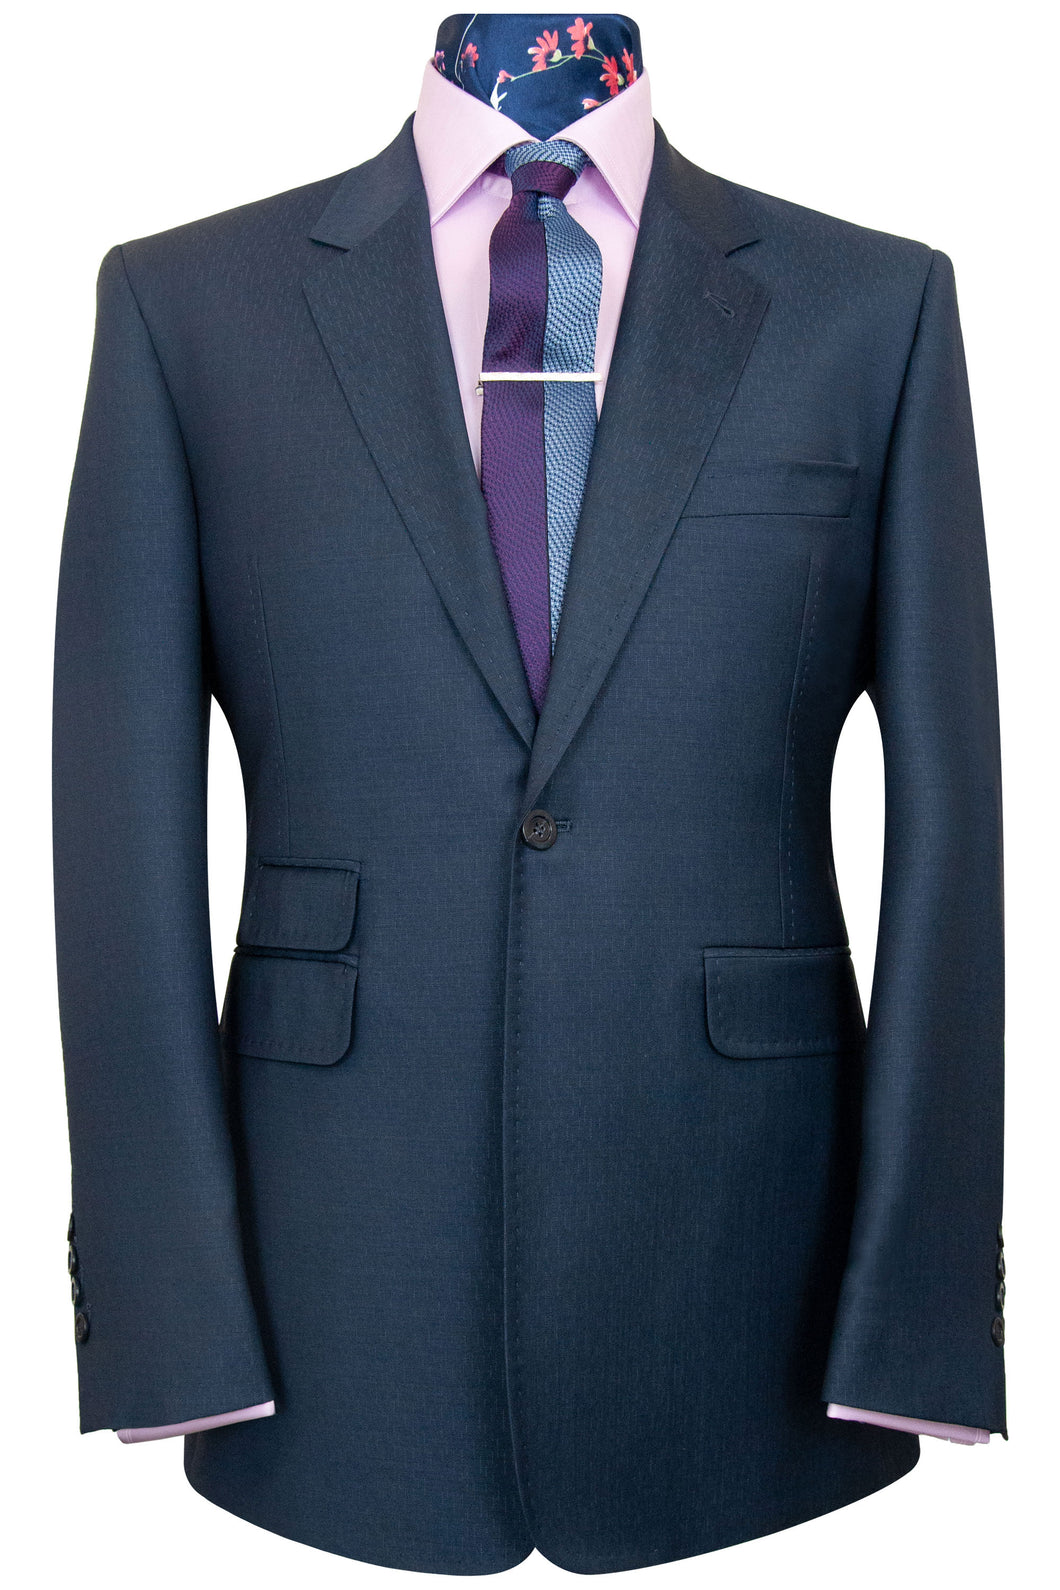 The Caldwell Prussian Blue Suit